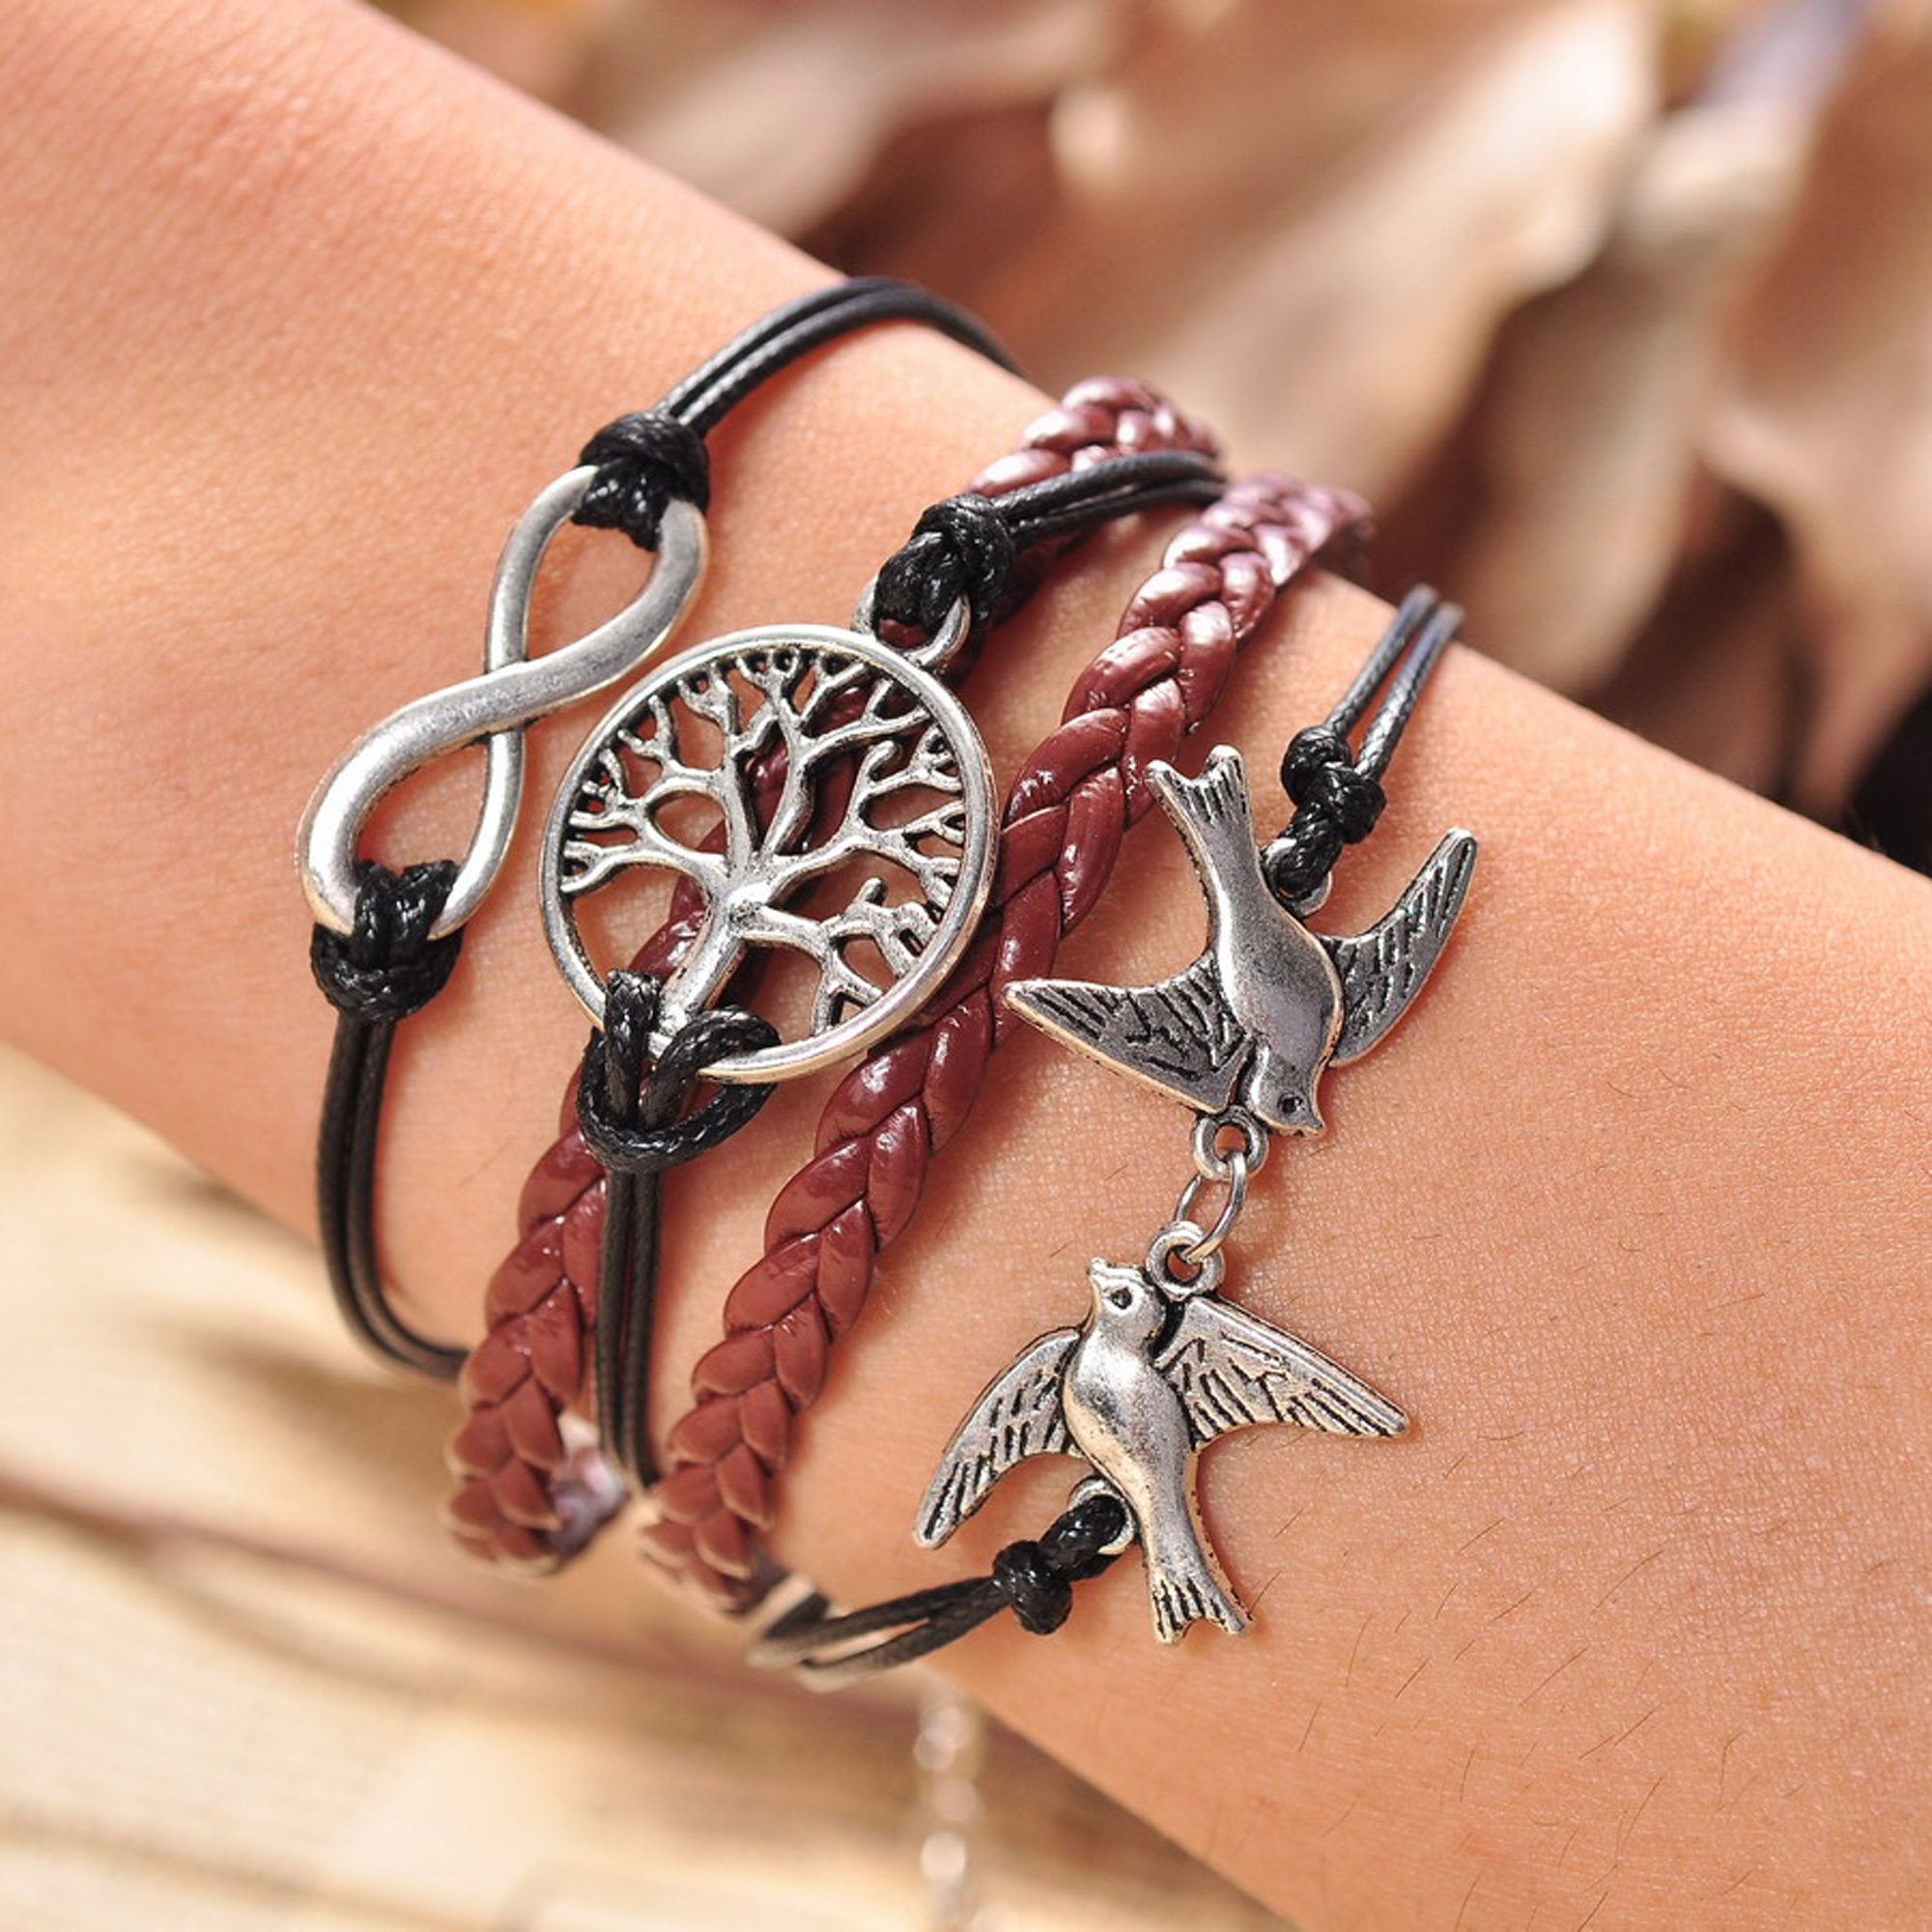 NEW Jewelry fashion Leather Cute Infinity Charm Bracelet Bangle DIY Style Pick